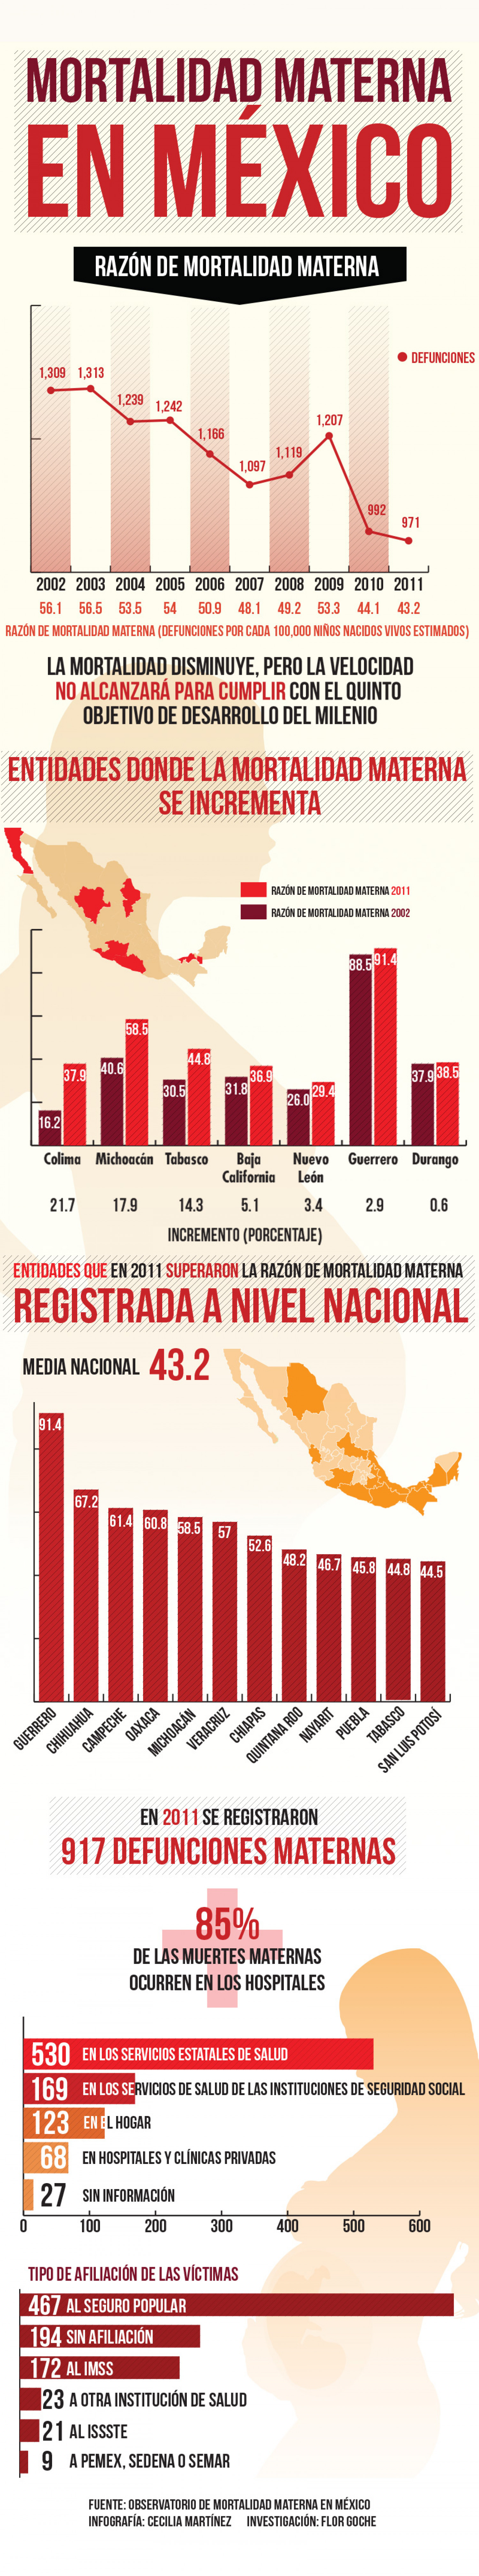 Maternal mortality in Mexico Infographic